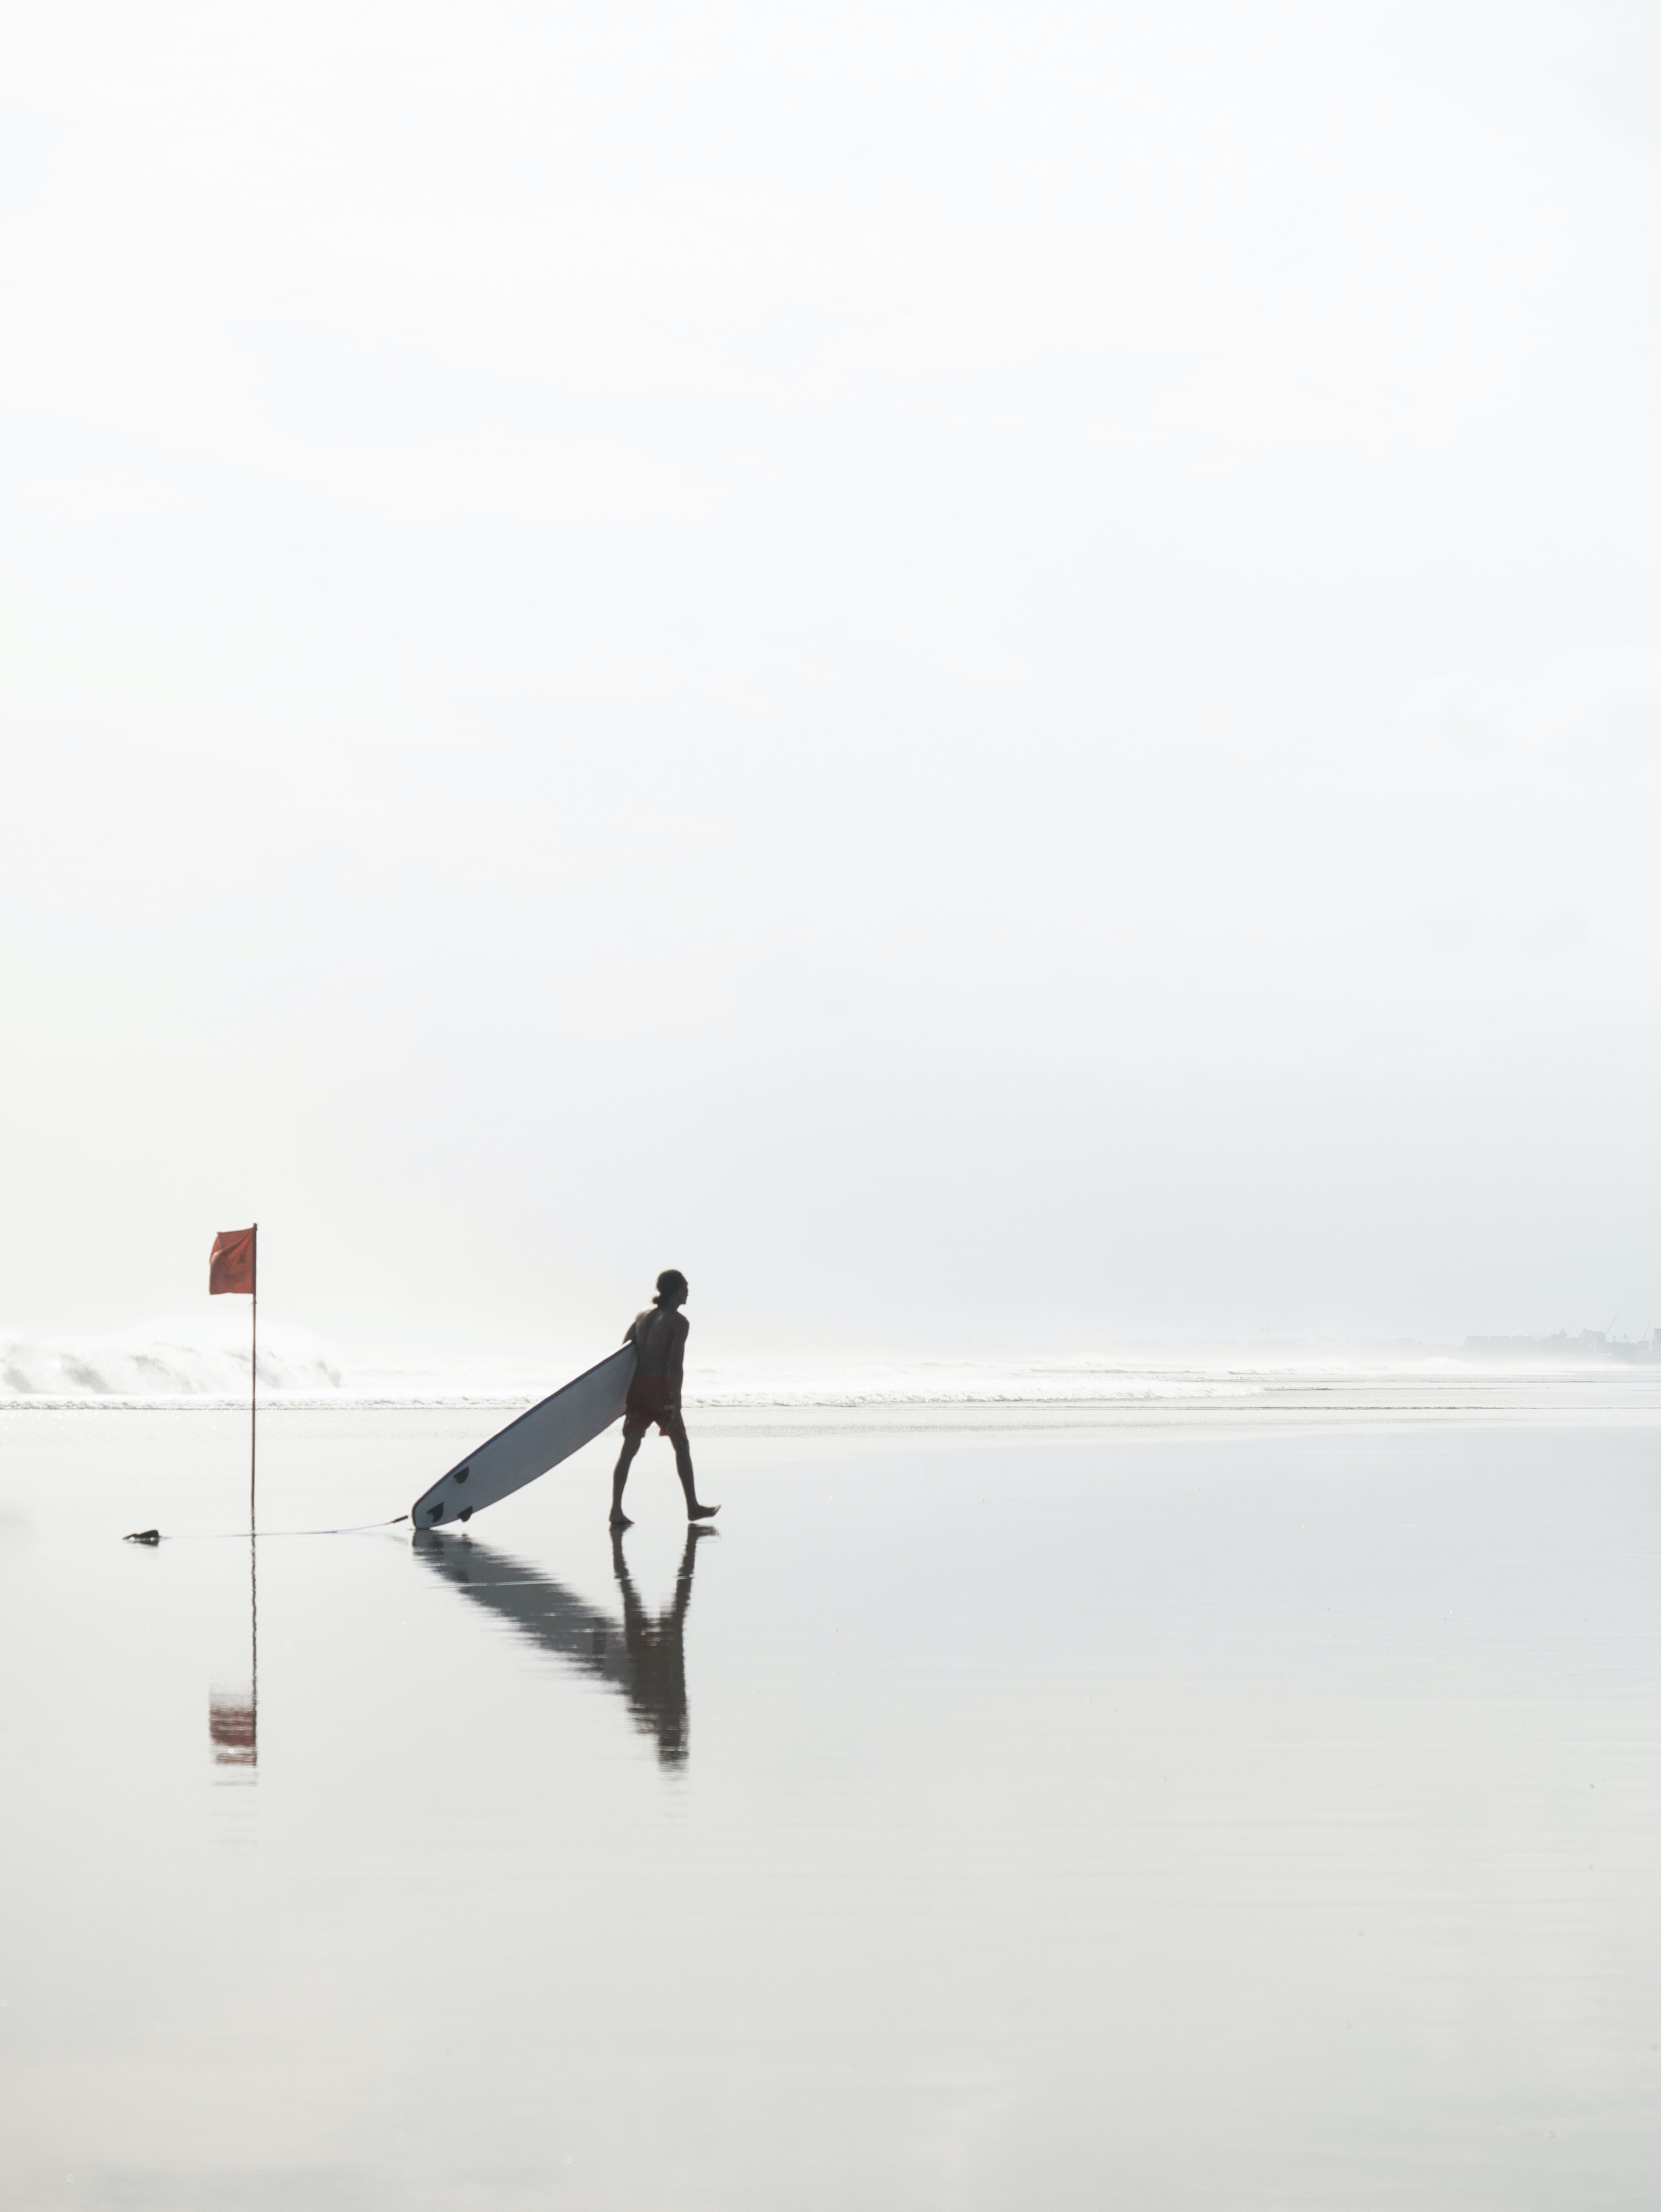 man walking while dragging surfboard at the beach near flag during day